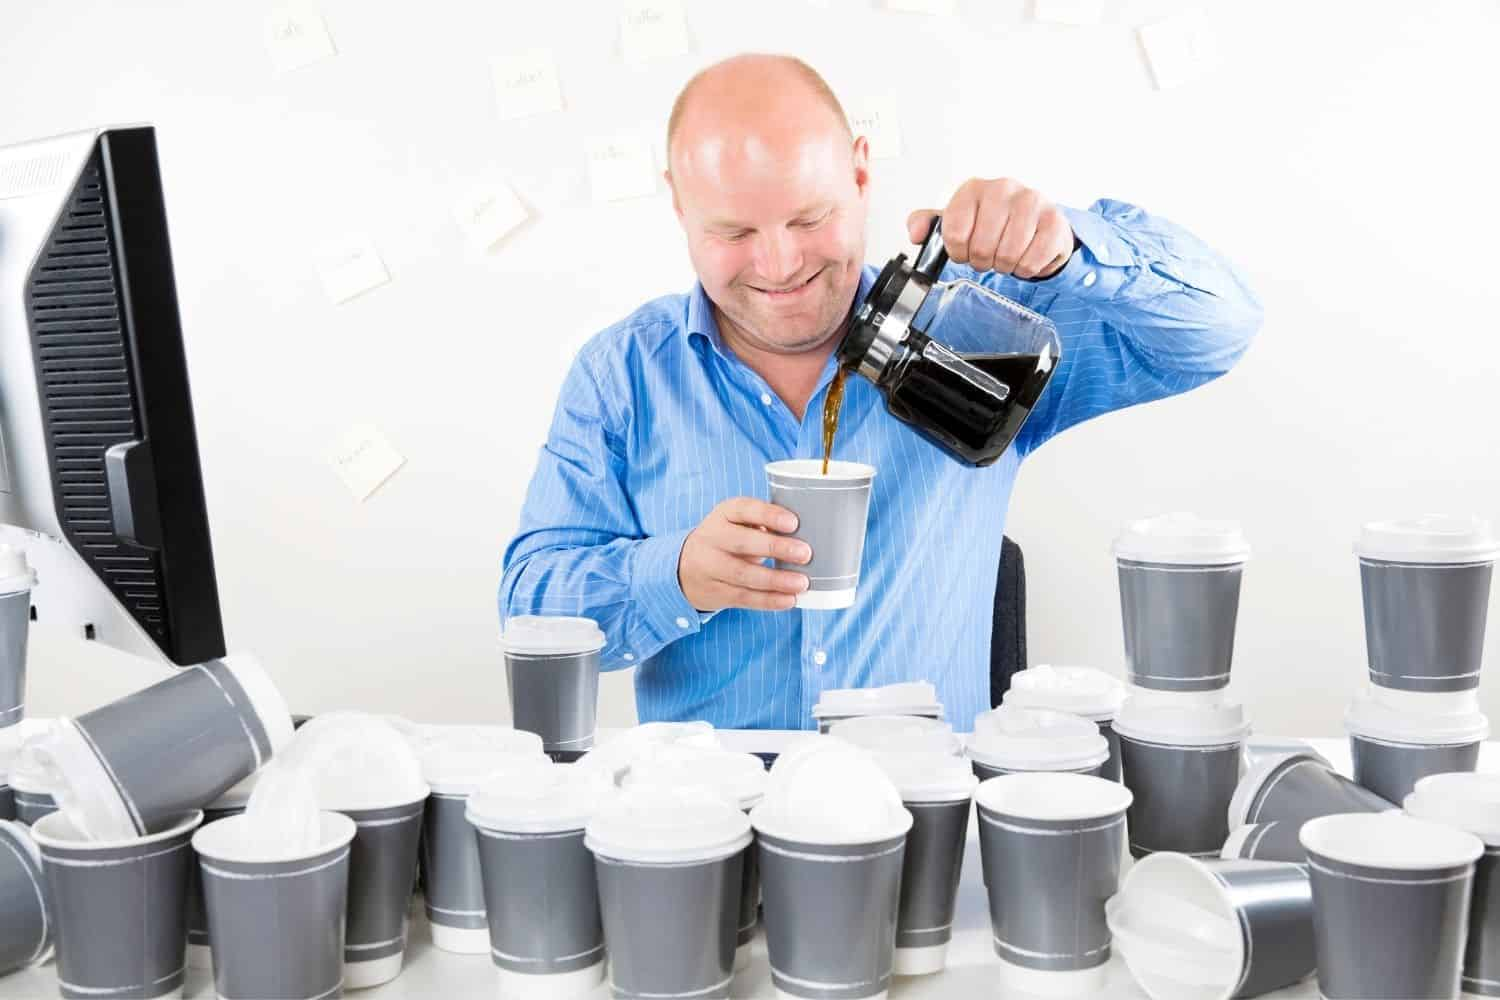 bald man drinking too many cups of coffee.